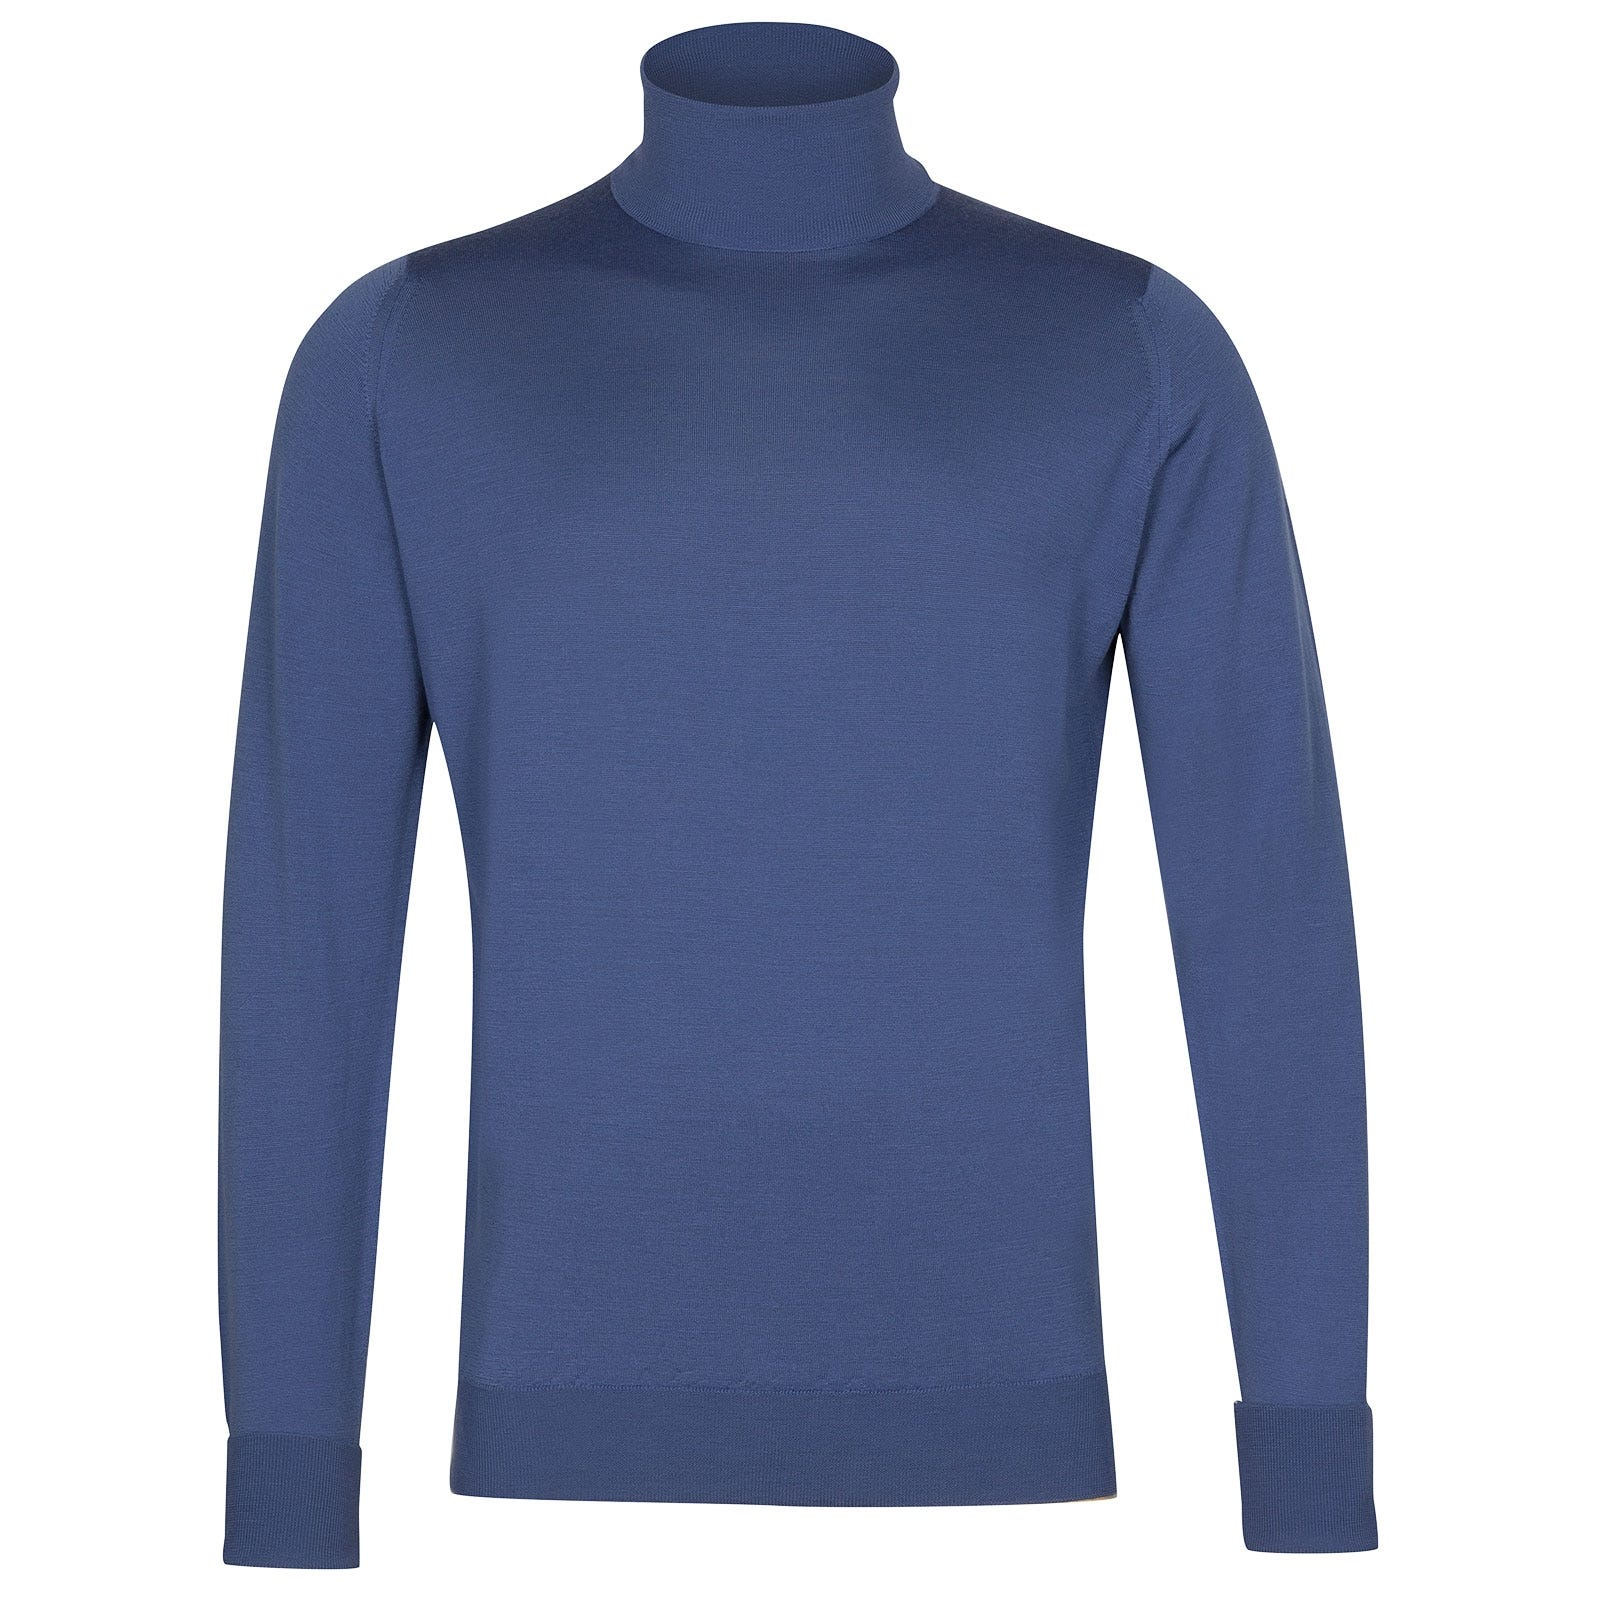 John Smedley Richards in Blue Iris Pullover-XLG